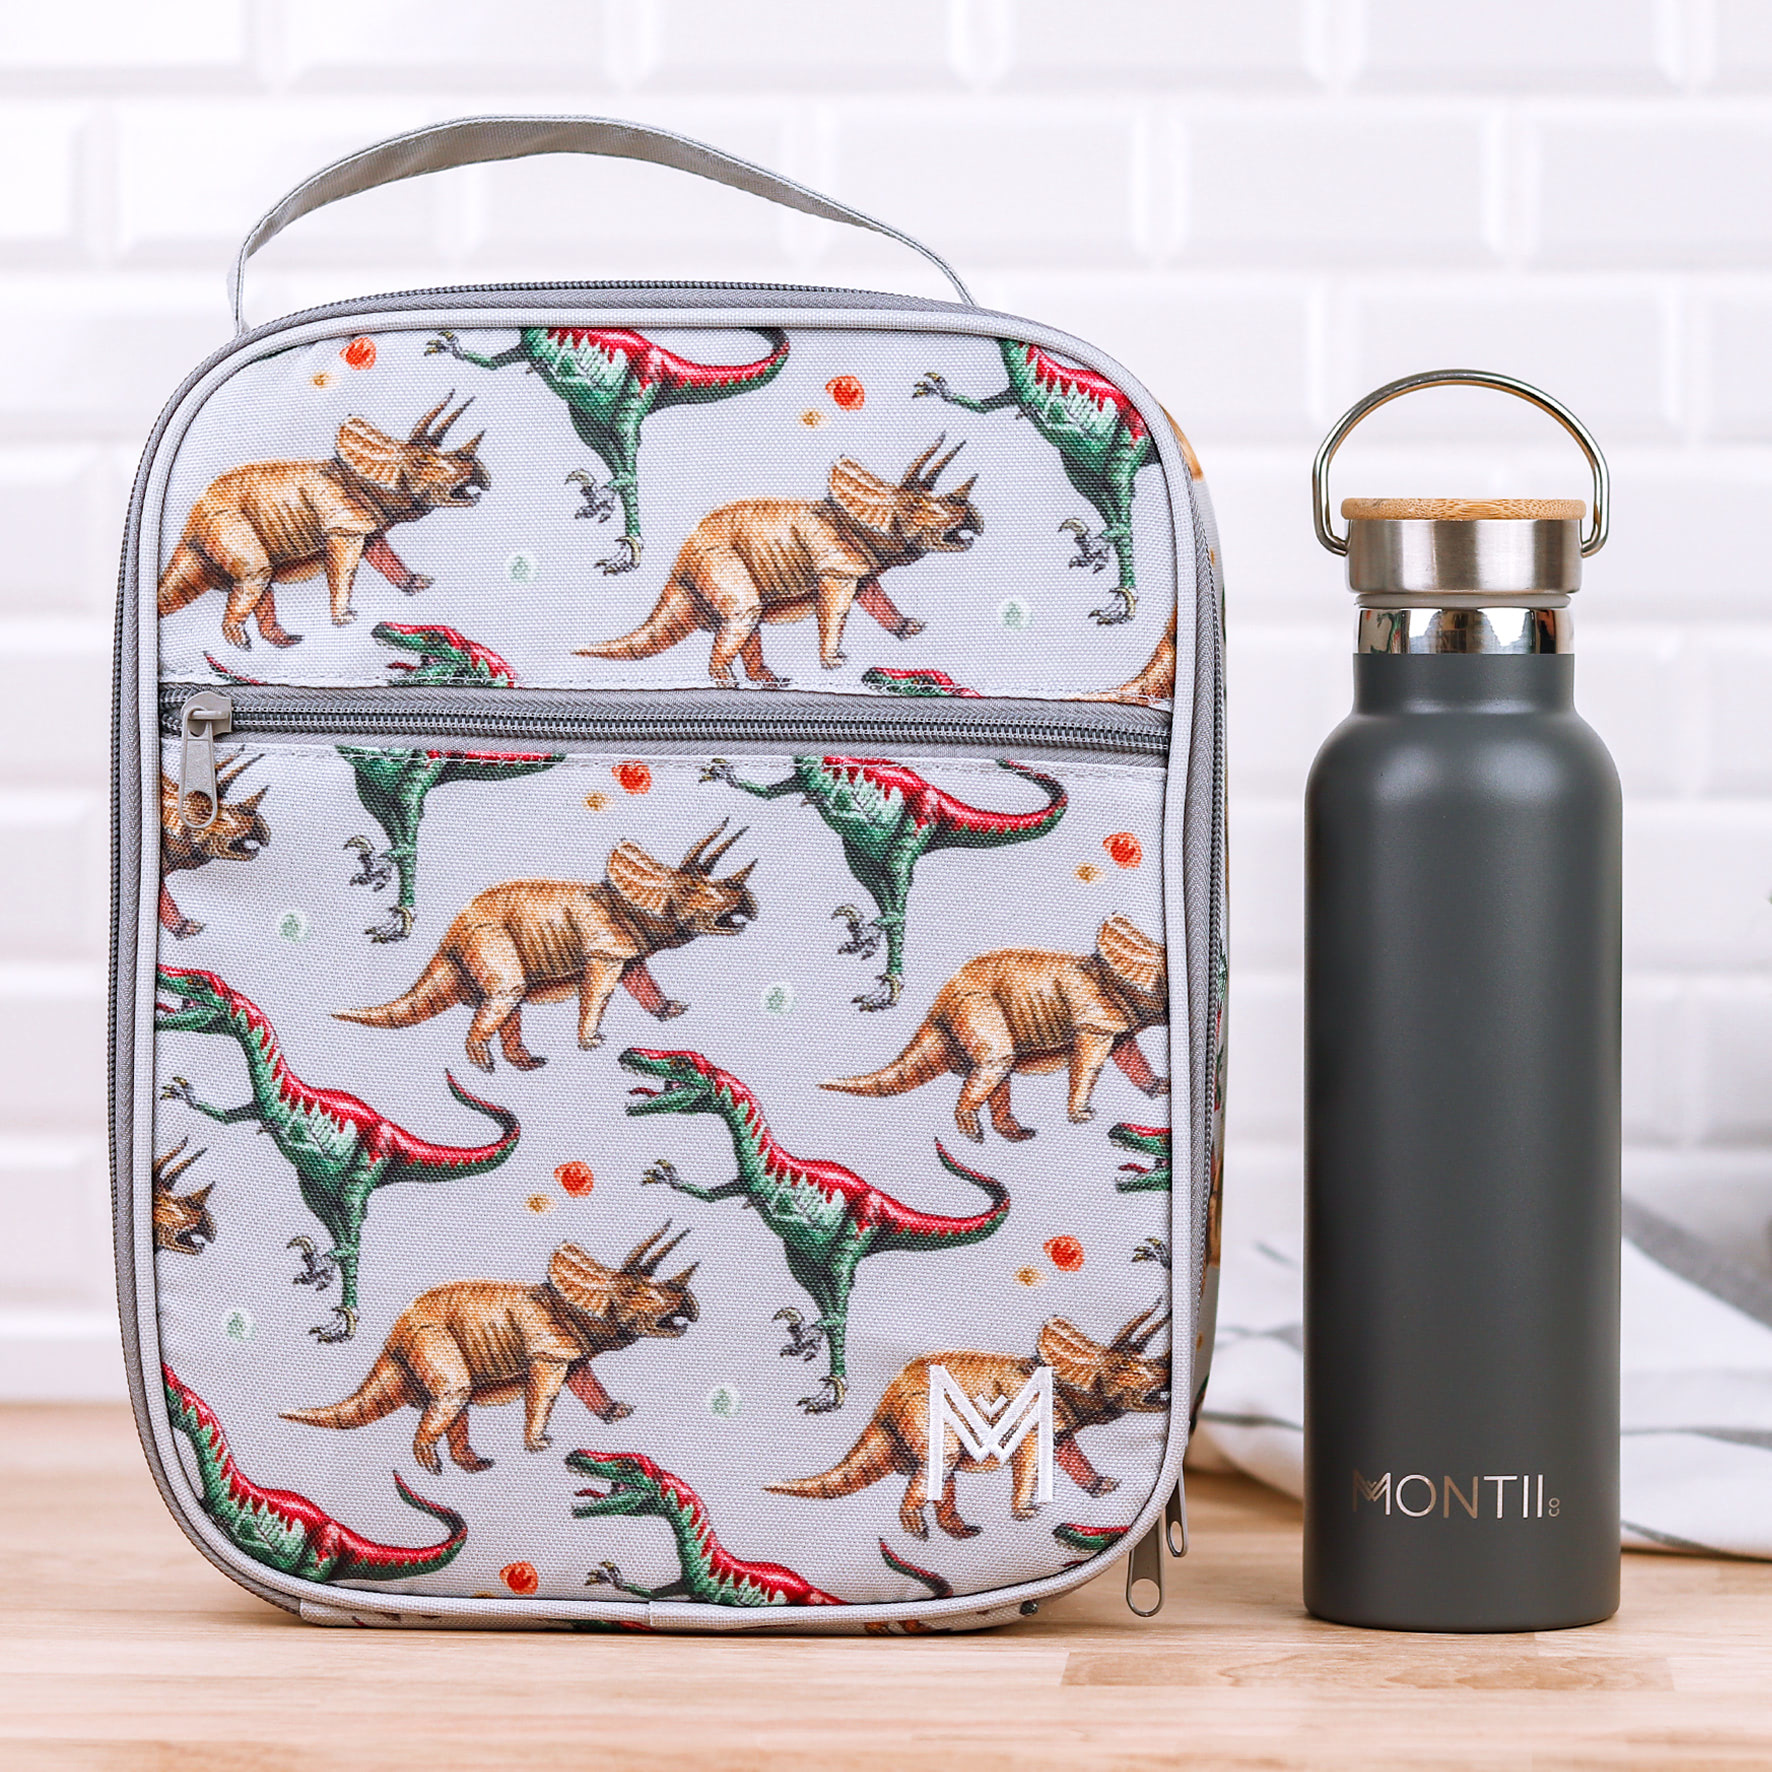 Montii insulated Lunch Bag - Dino-4